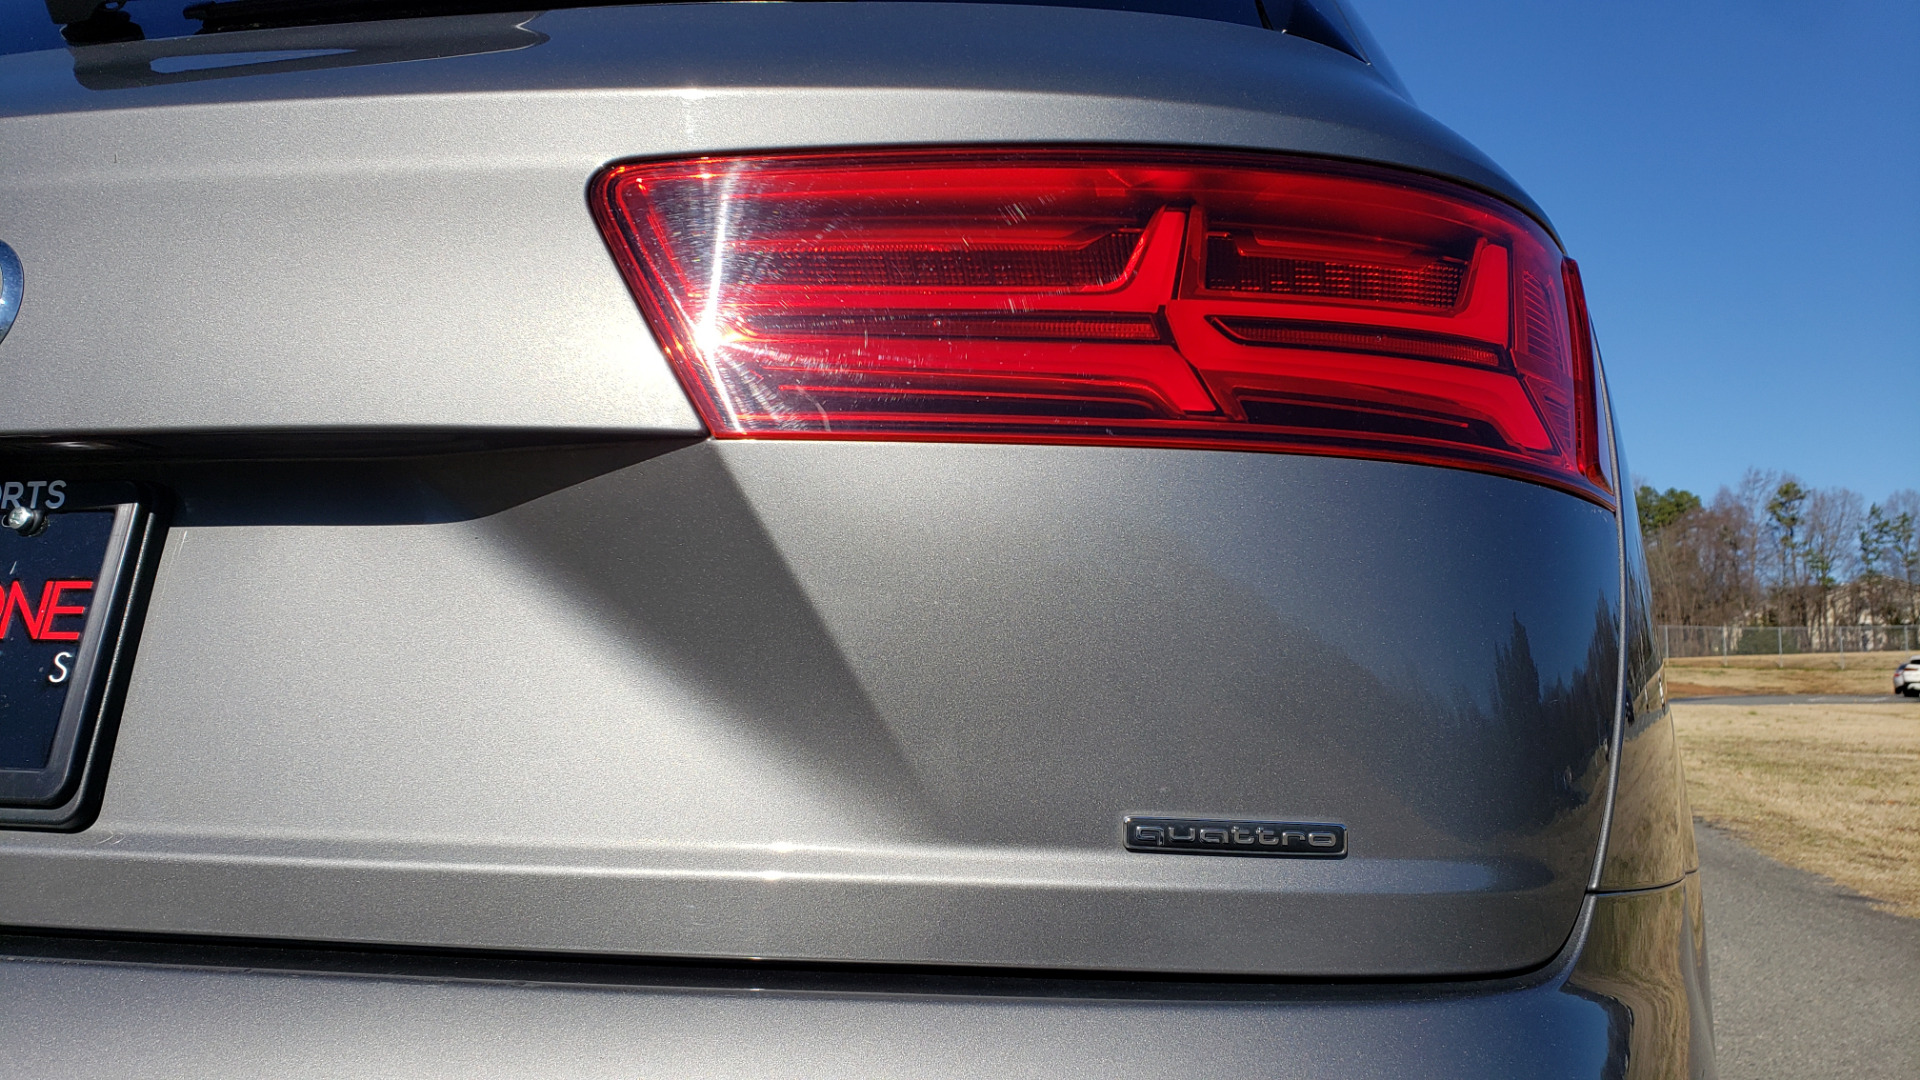 Used 2017 Audi Q7 PREMIUM PLUS / 2.0T TIPTRONIC / NAV / PANO-ROOF / 3-ROW / REARVIEW for sale $33,999 at Formula Imports in Charlotte NC 28227 27